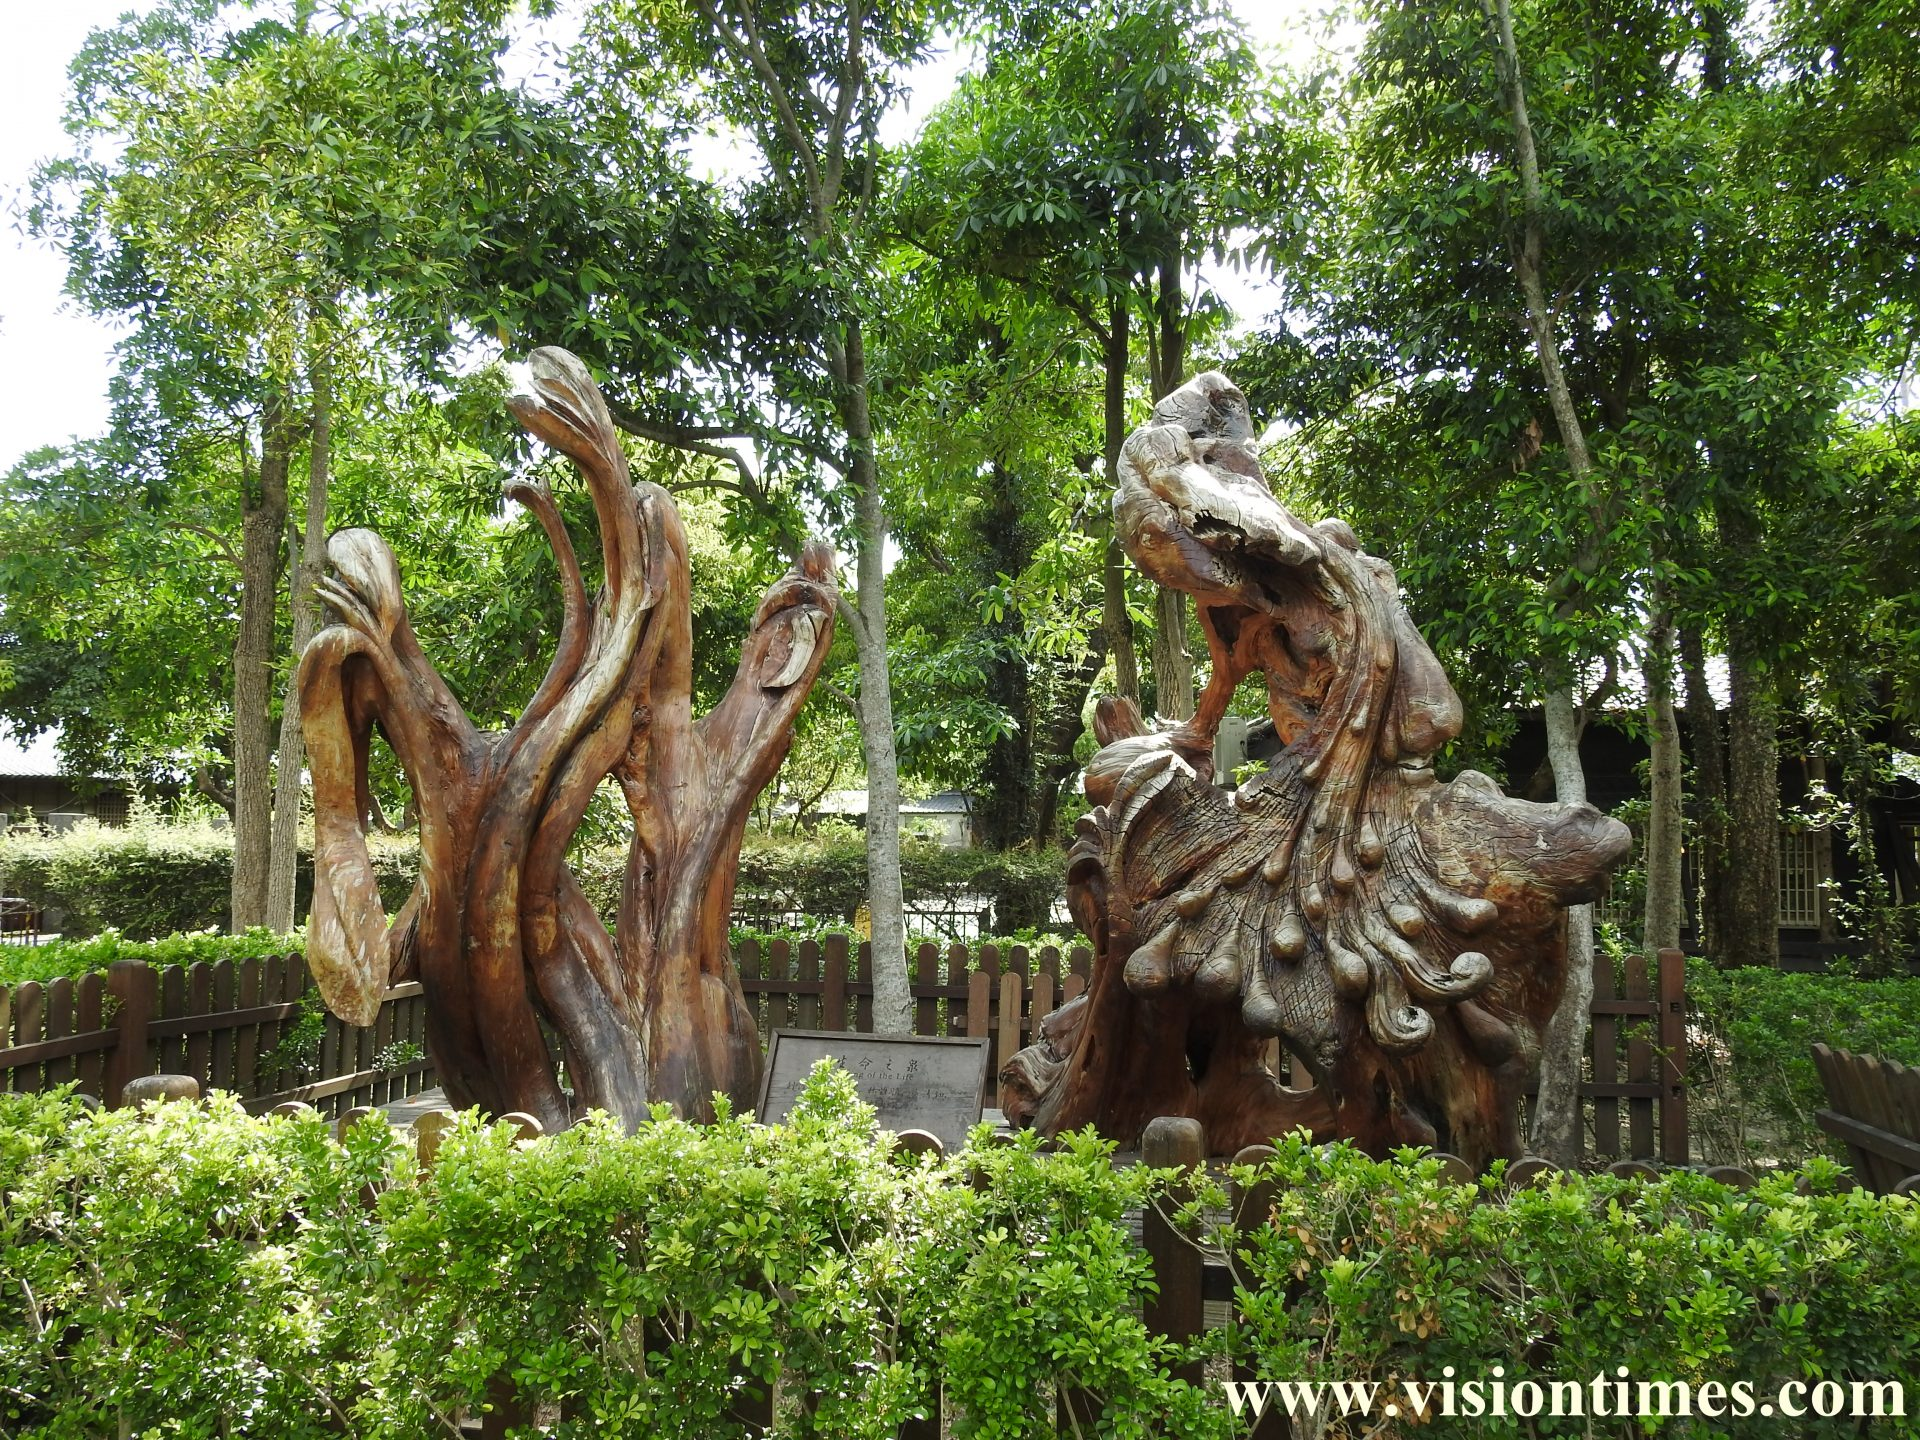 The giant driftwood artifacts in Luodong Forestry Culture Garden are very unique. (Image: Billy Shyu / Vision Times)